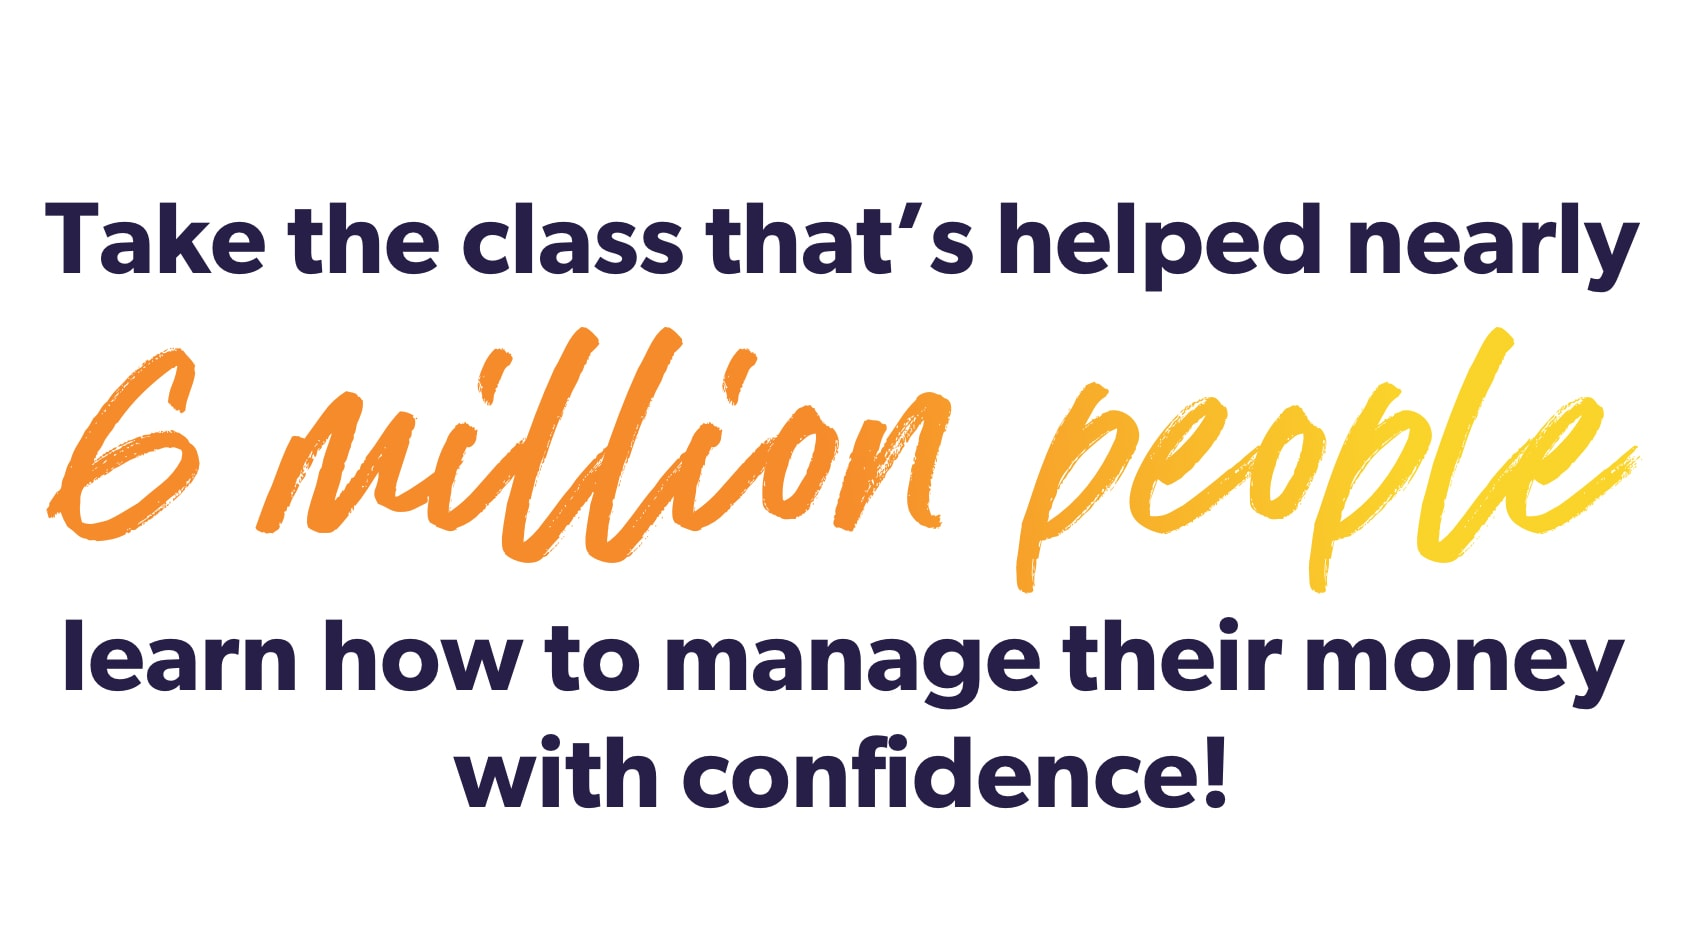 Take the class that's helped nearly 6 million people learn how to manage their money with confidence!